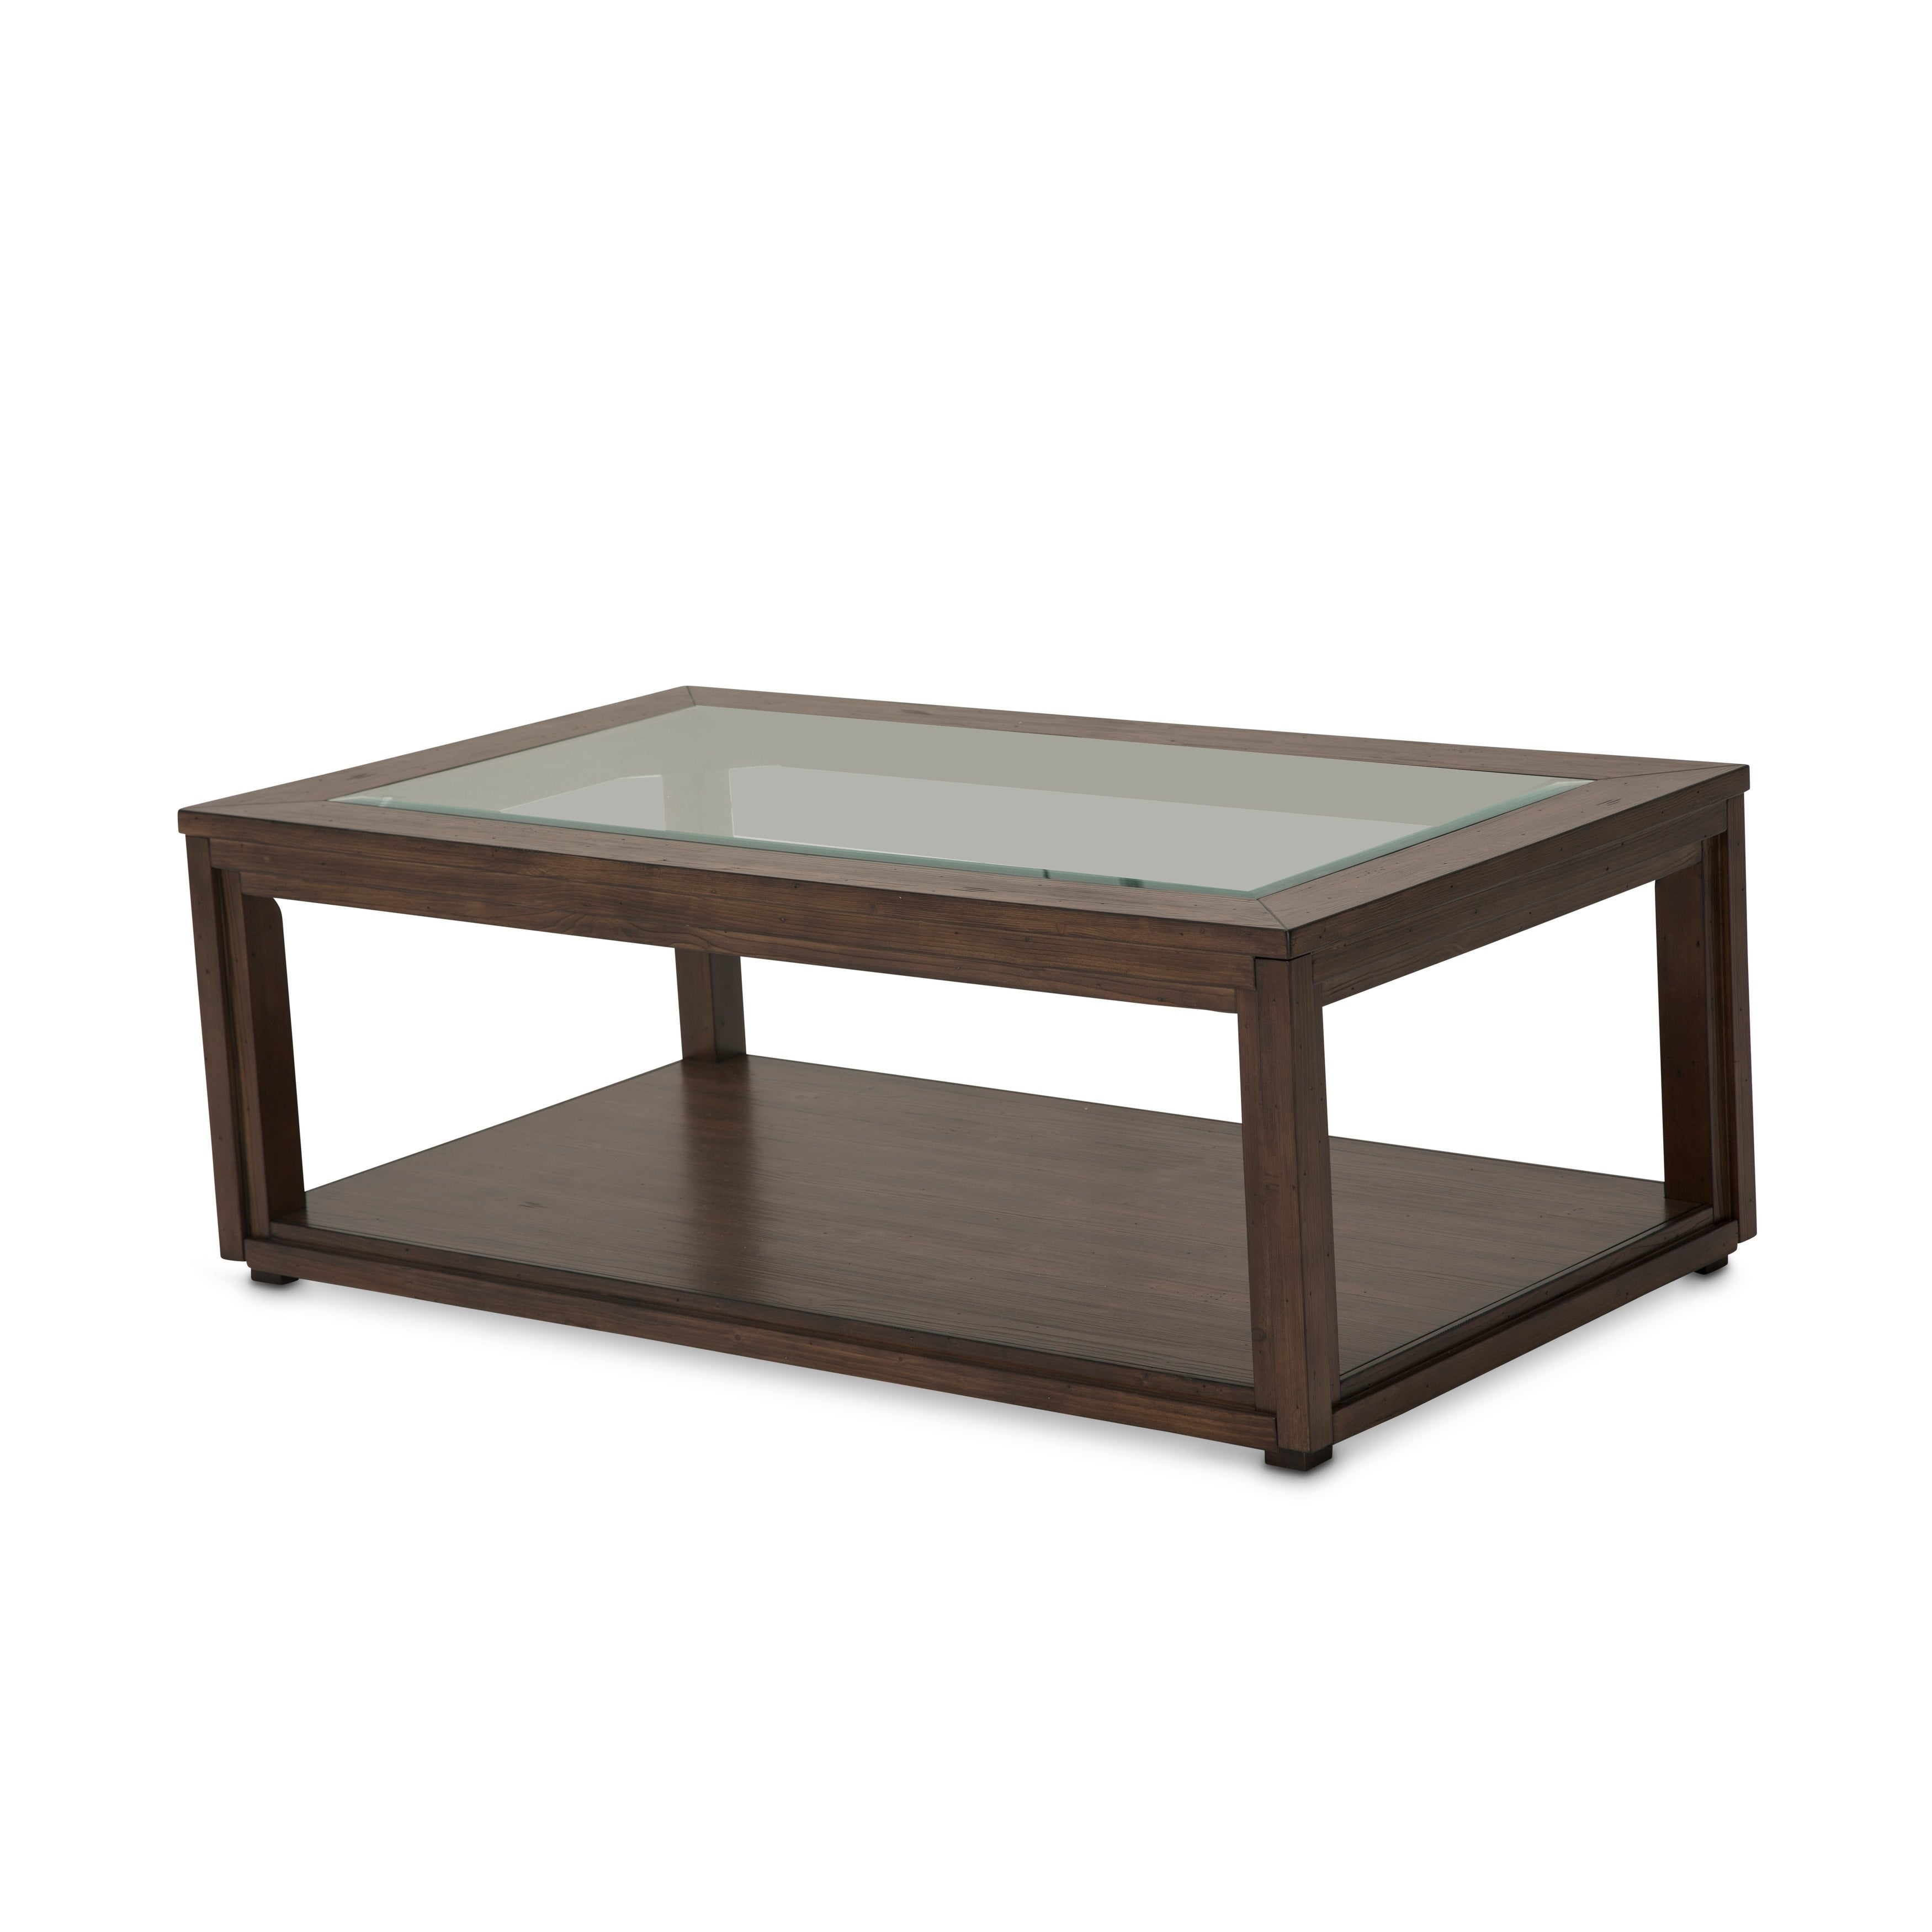 Carrollton Rustic Ranch Rectangular Cocktail Table by Kathy Ireland